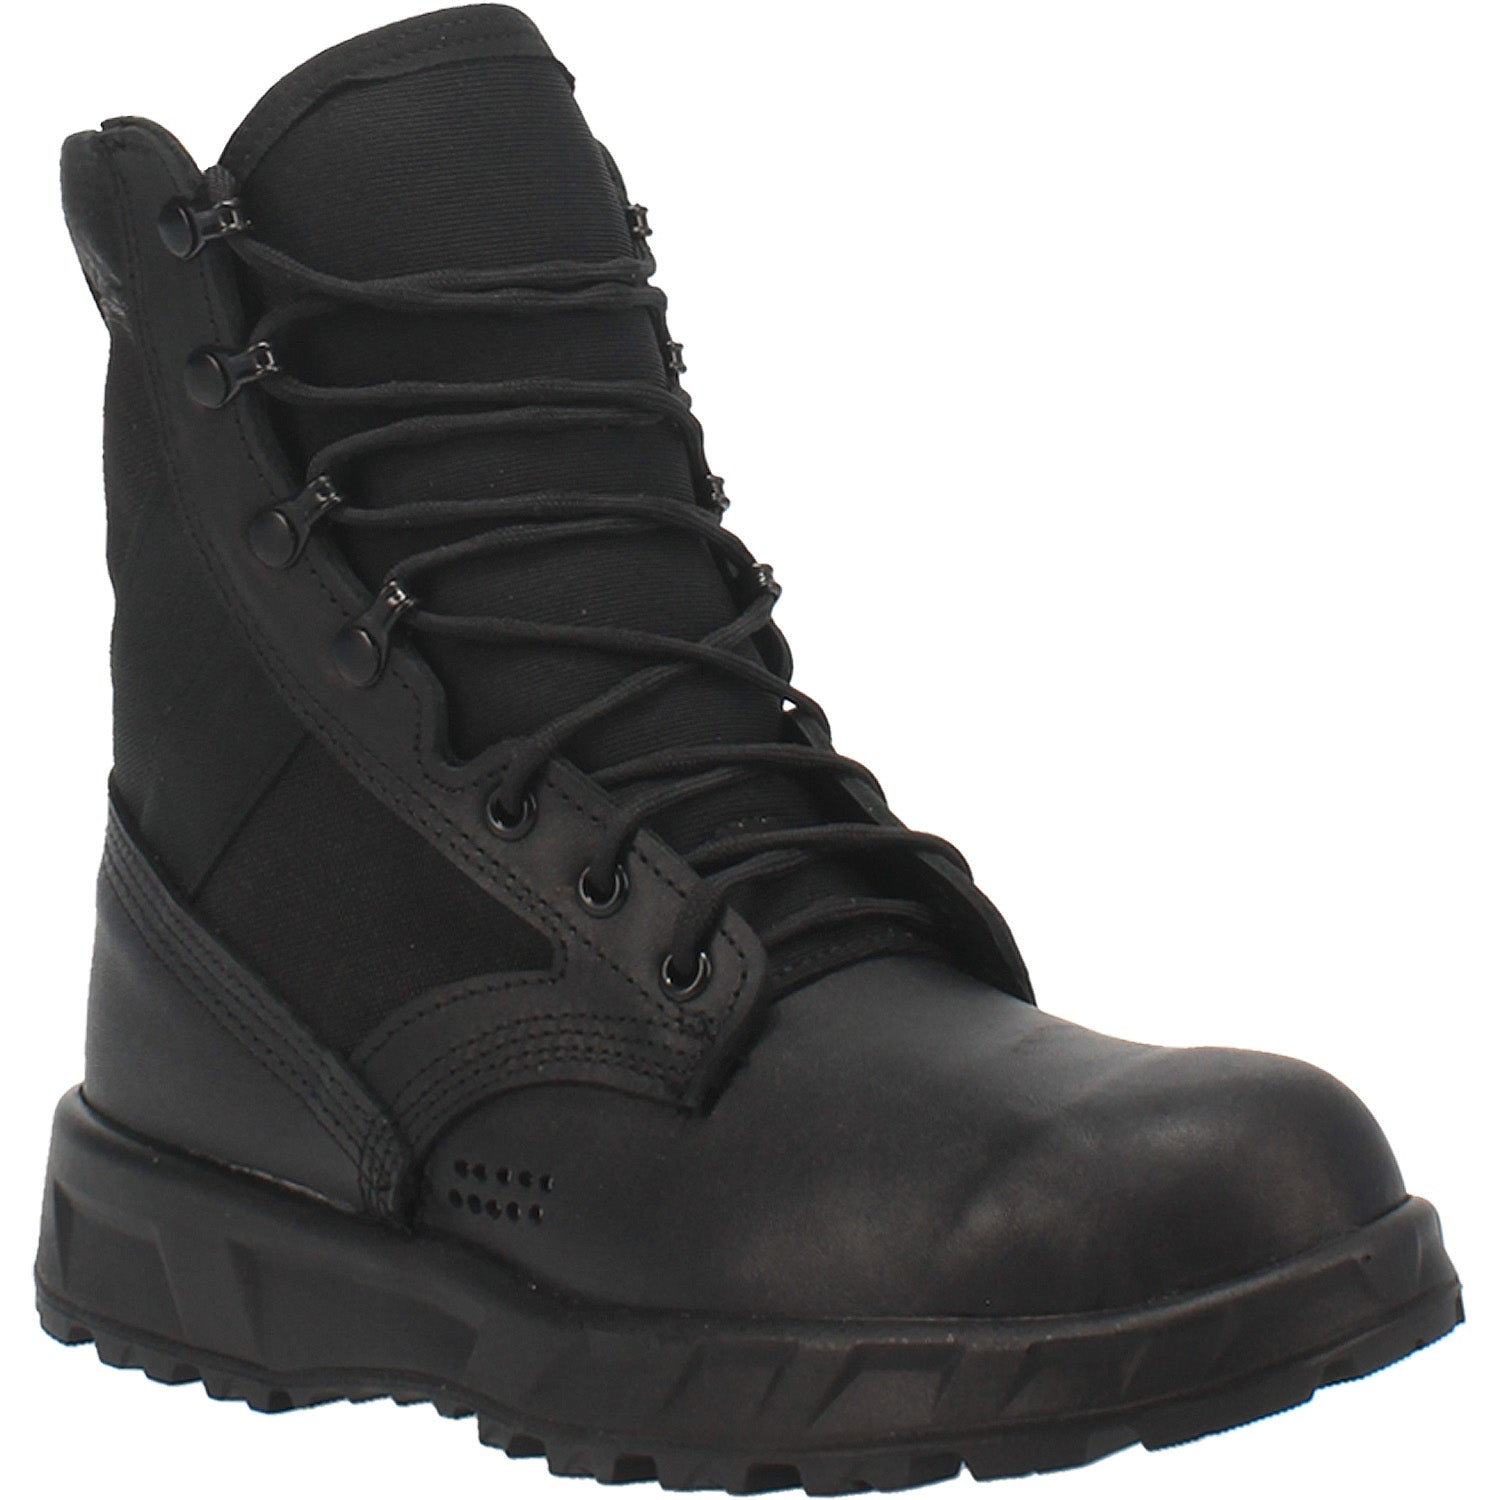 T2 Ultra Light Hot Weather Combat Boot 14940878733354